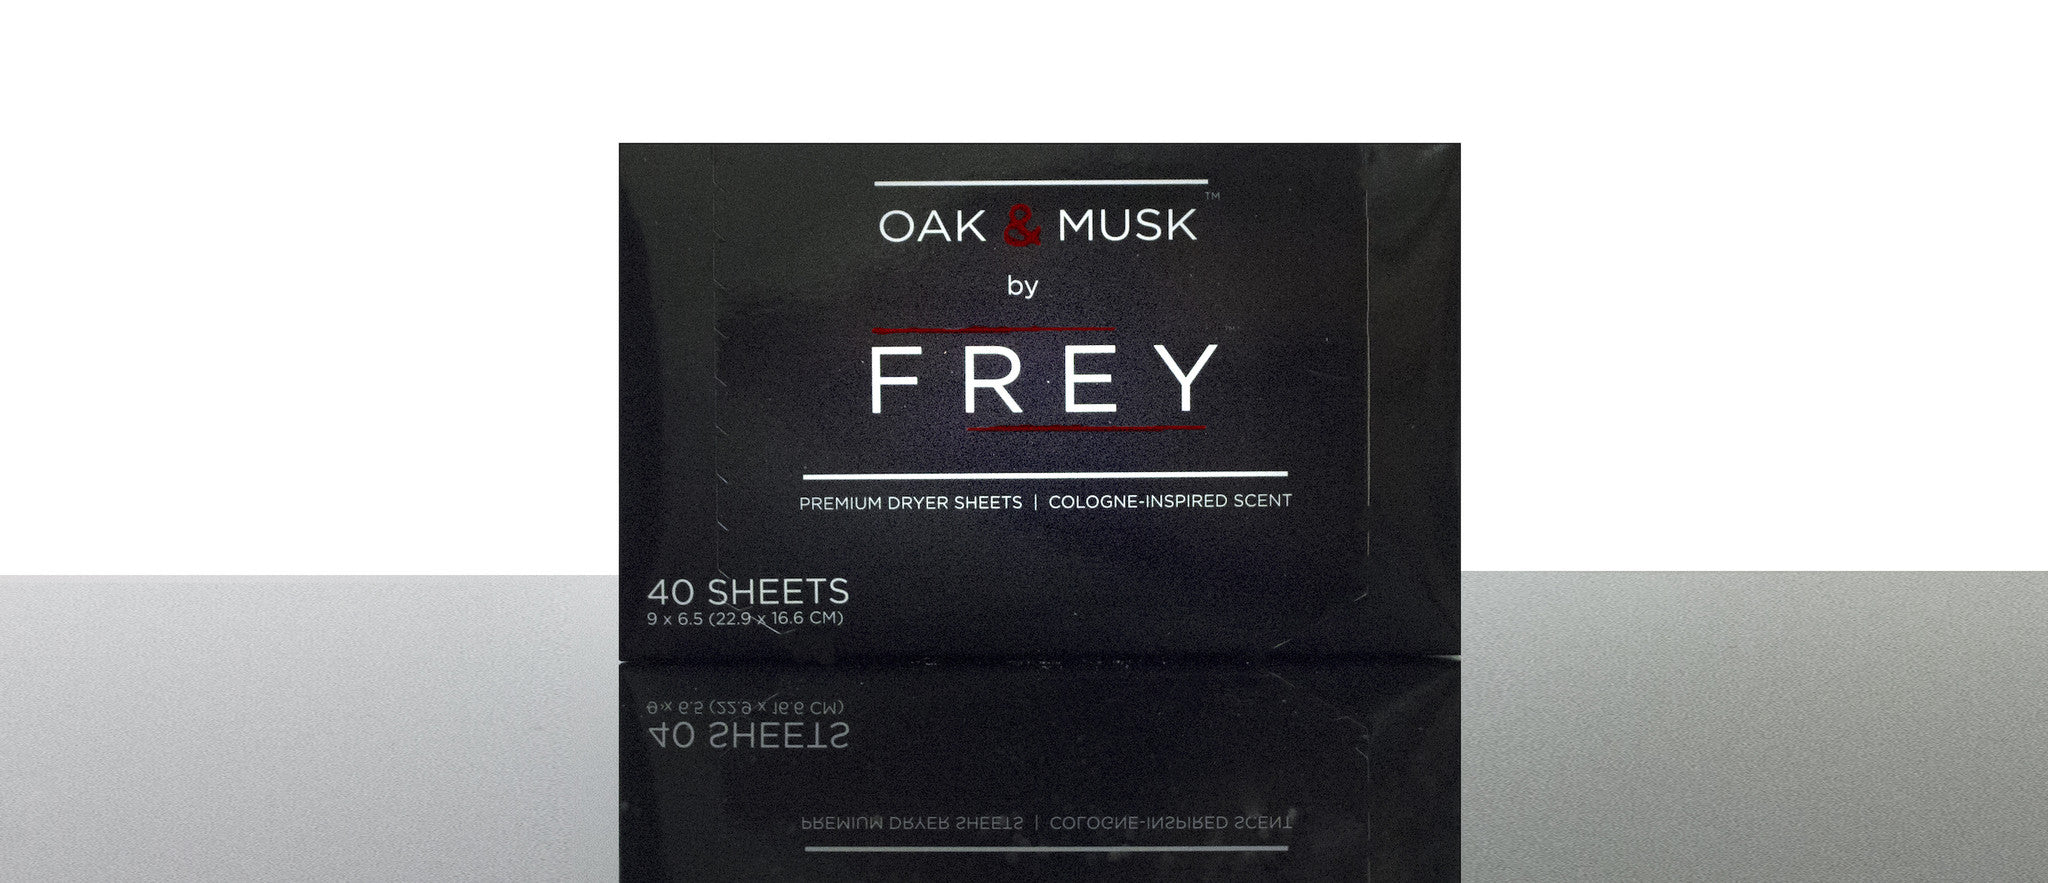 FREY Premium Dryer Sheets - FREY: Detergent for Men  - 2